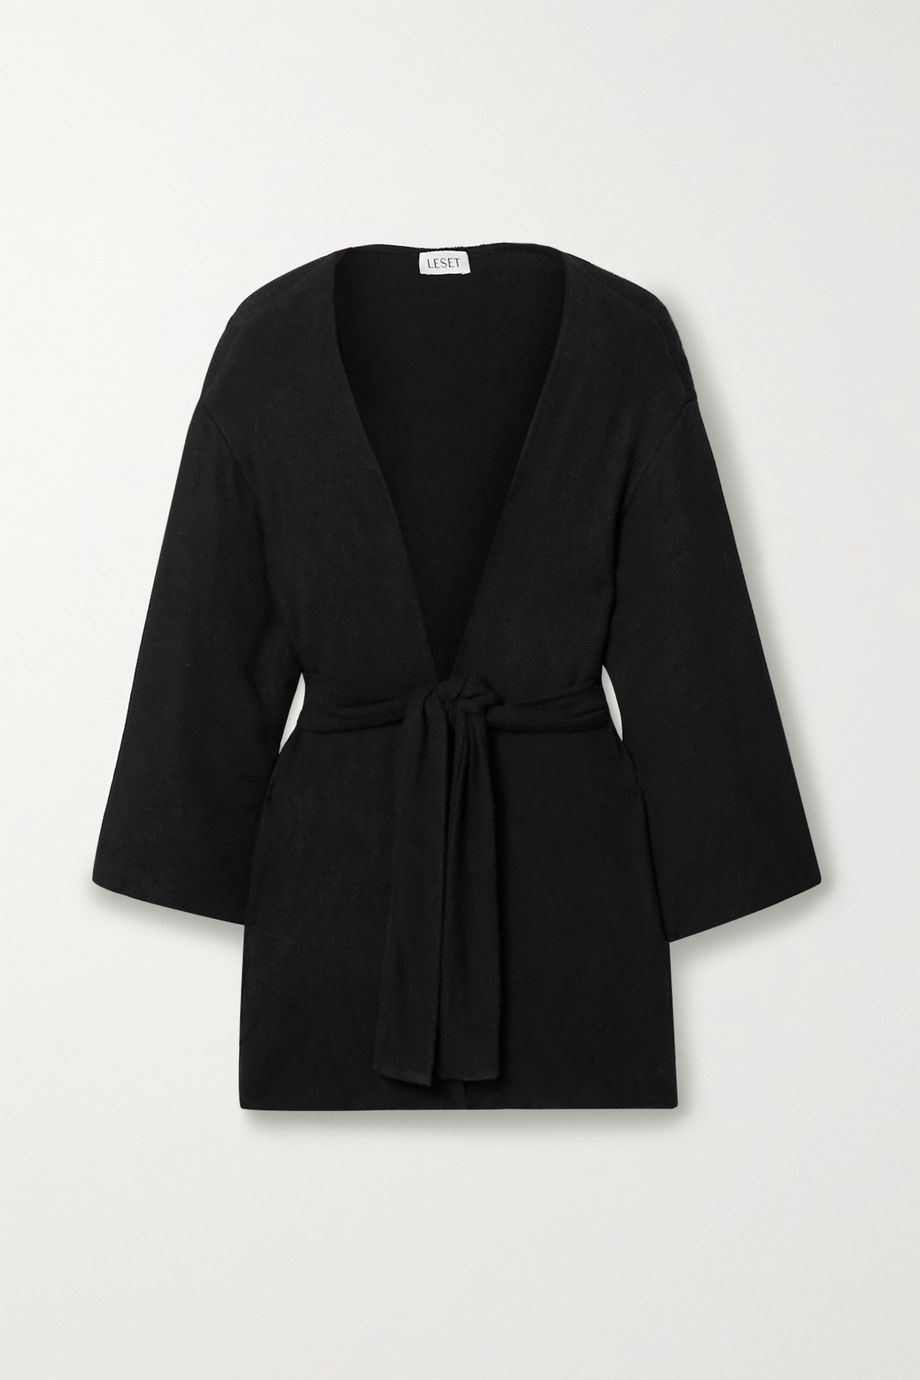 LESET Lori oversized belted brushed stretch-jersey cardigan